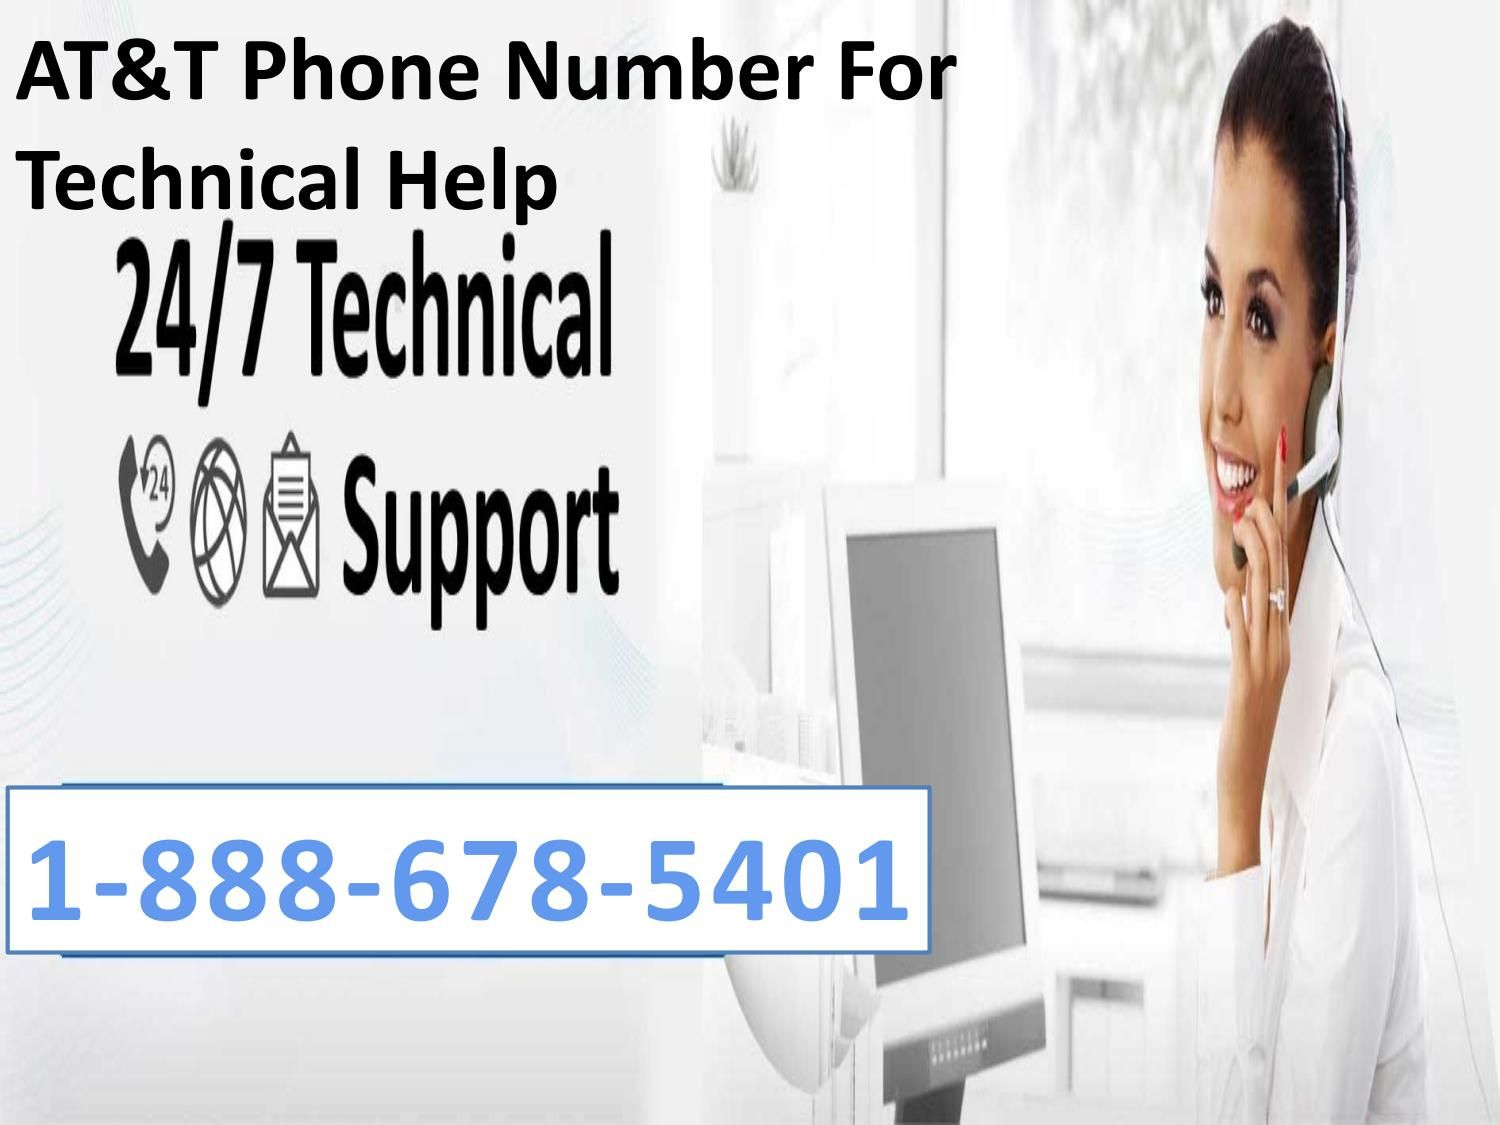 dial 18886785401 At&t Phone Number For Technical Help